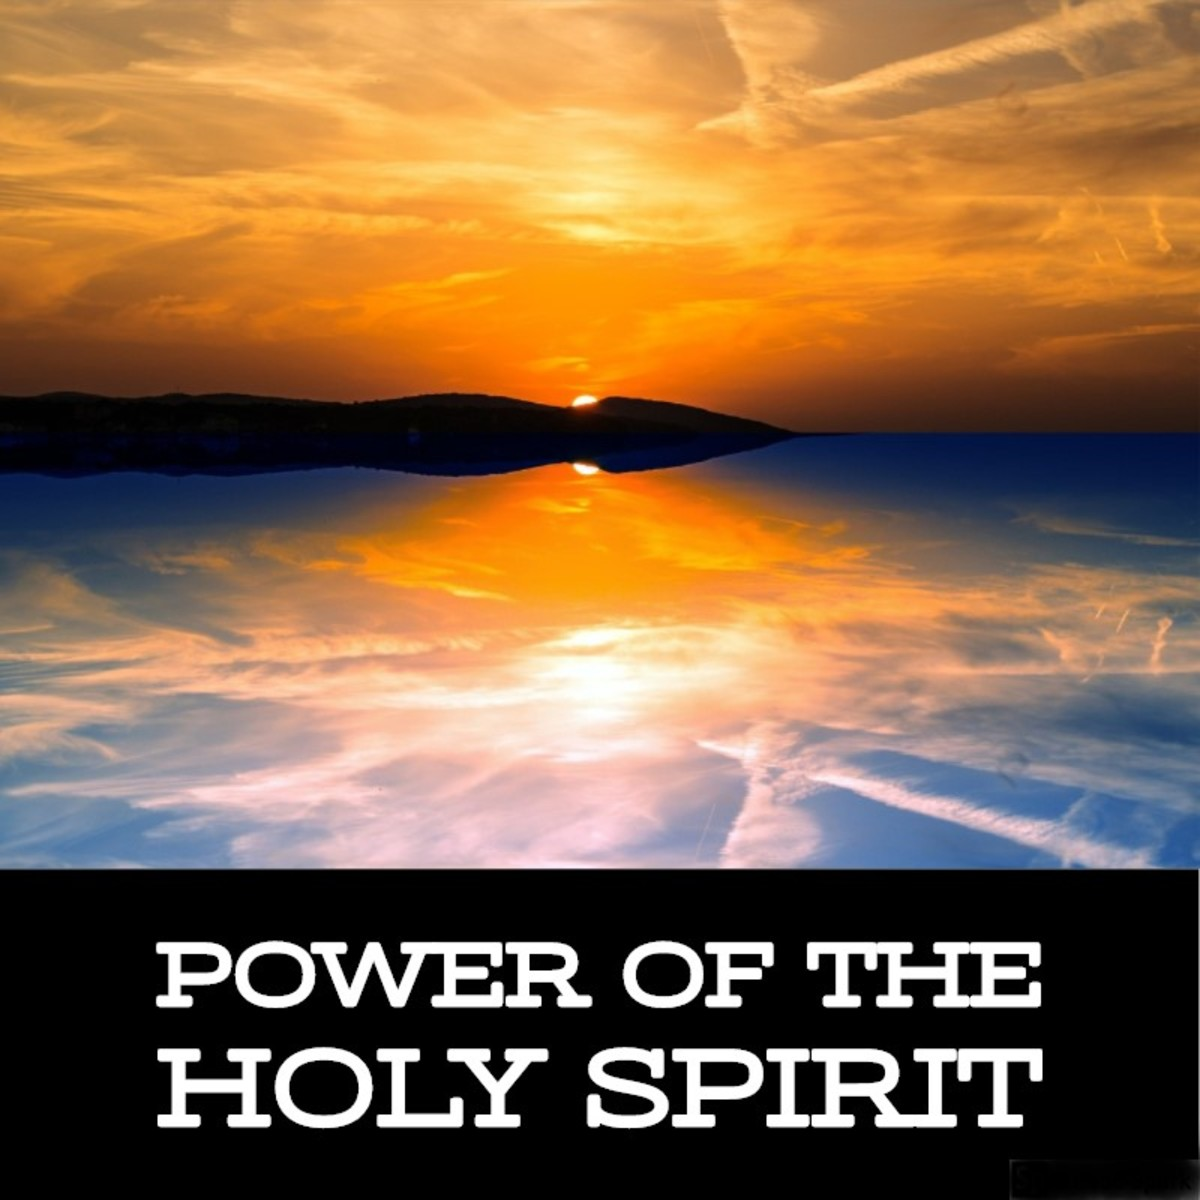 Power of the Holy Spirit.